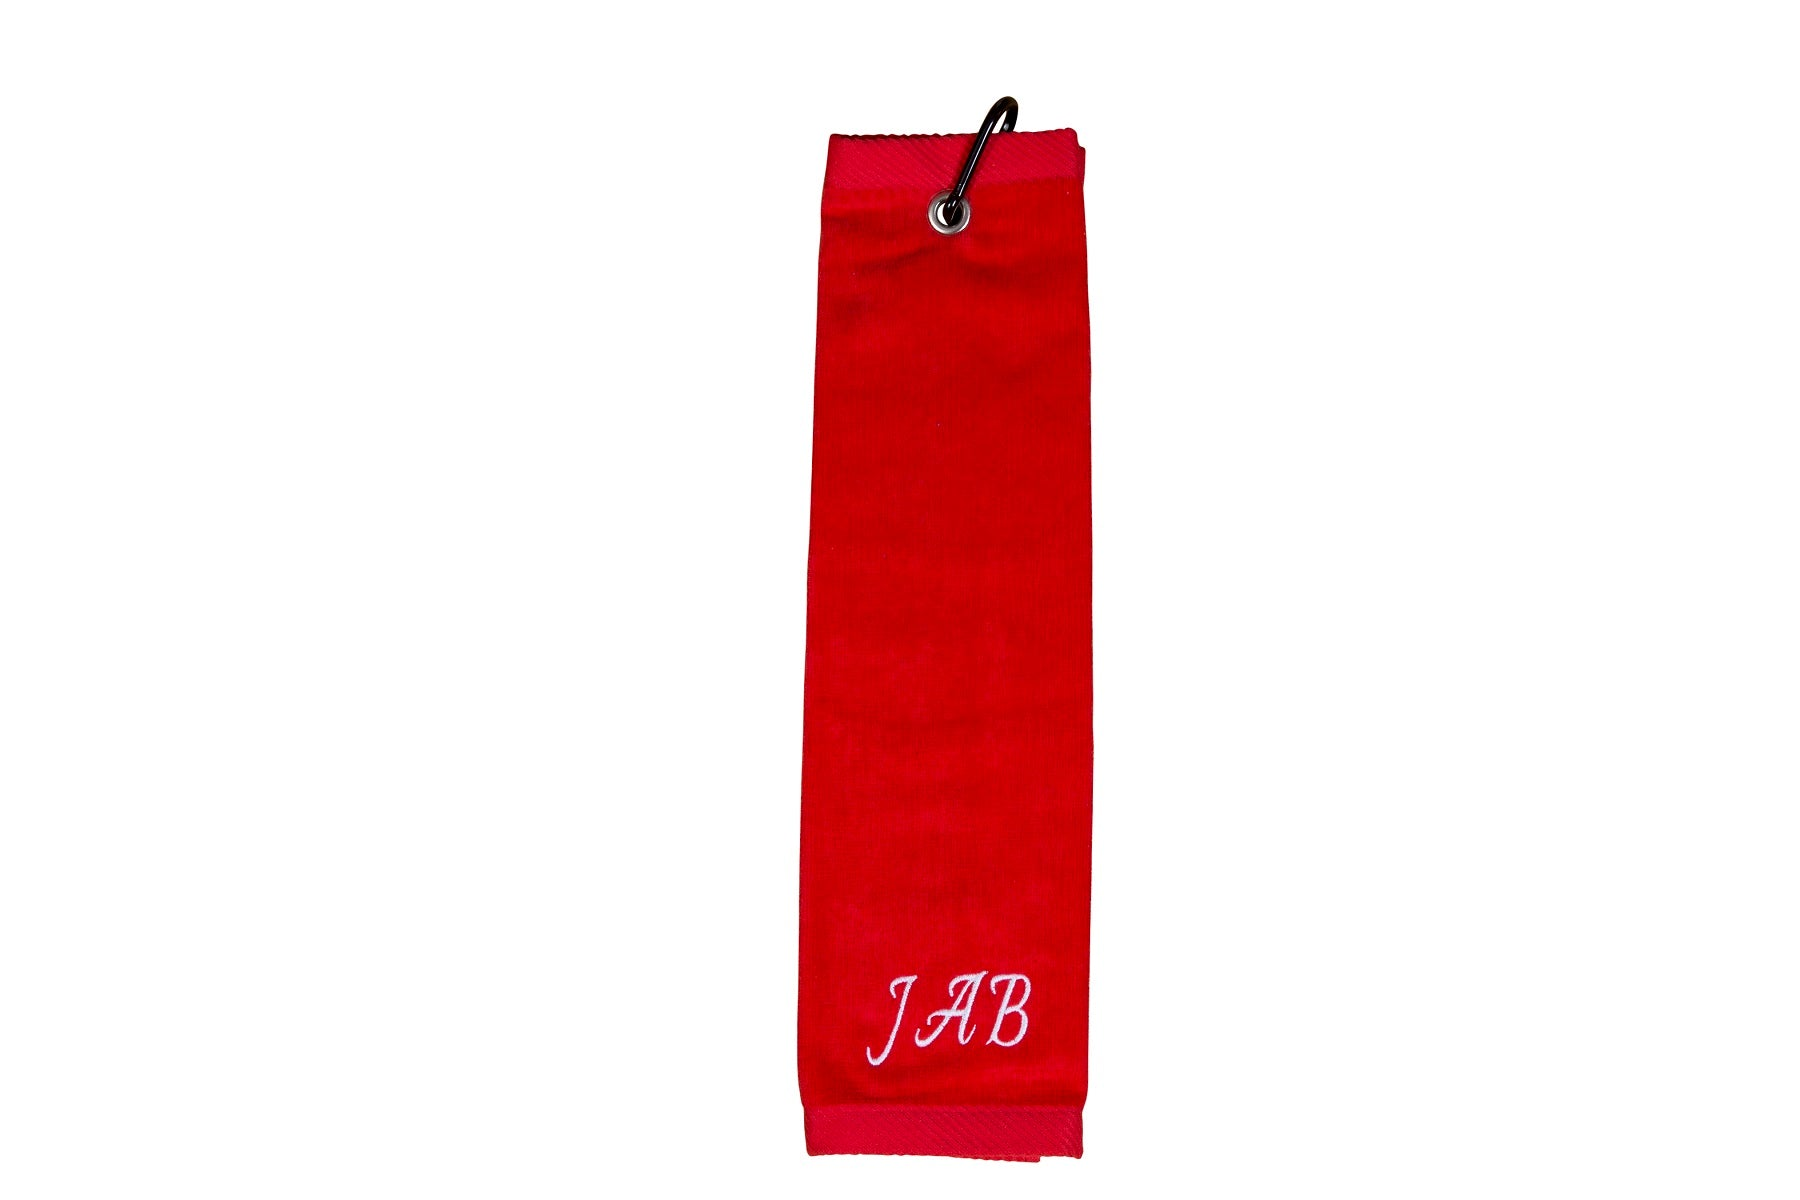 Personalised golf towel 100% red cotton velour with carabiner and grommet